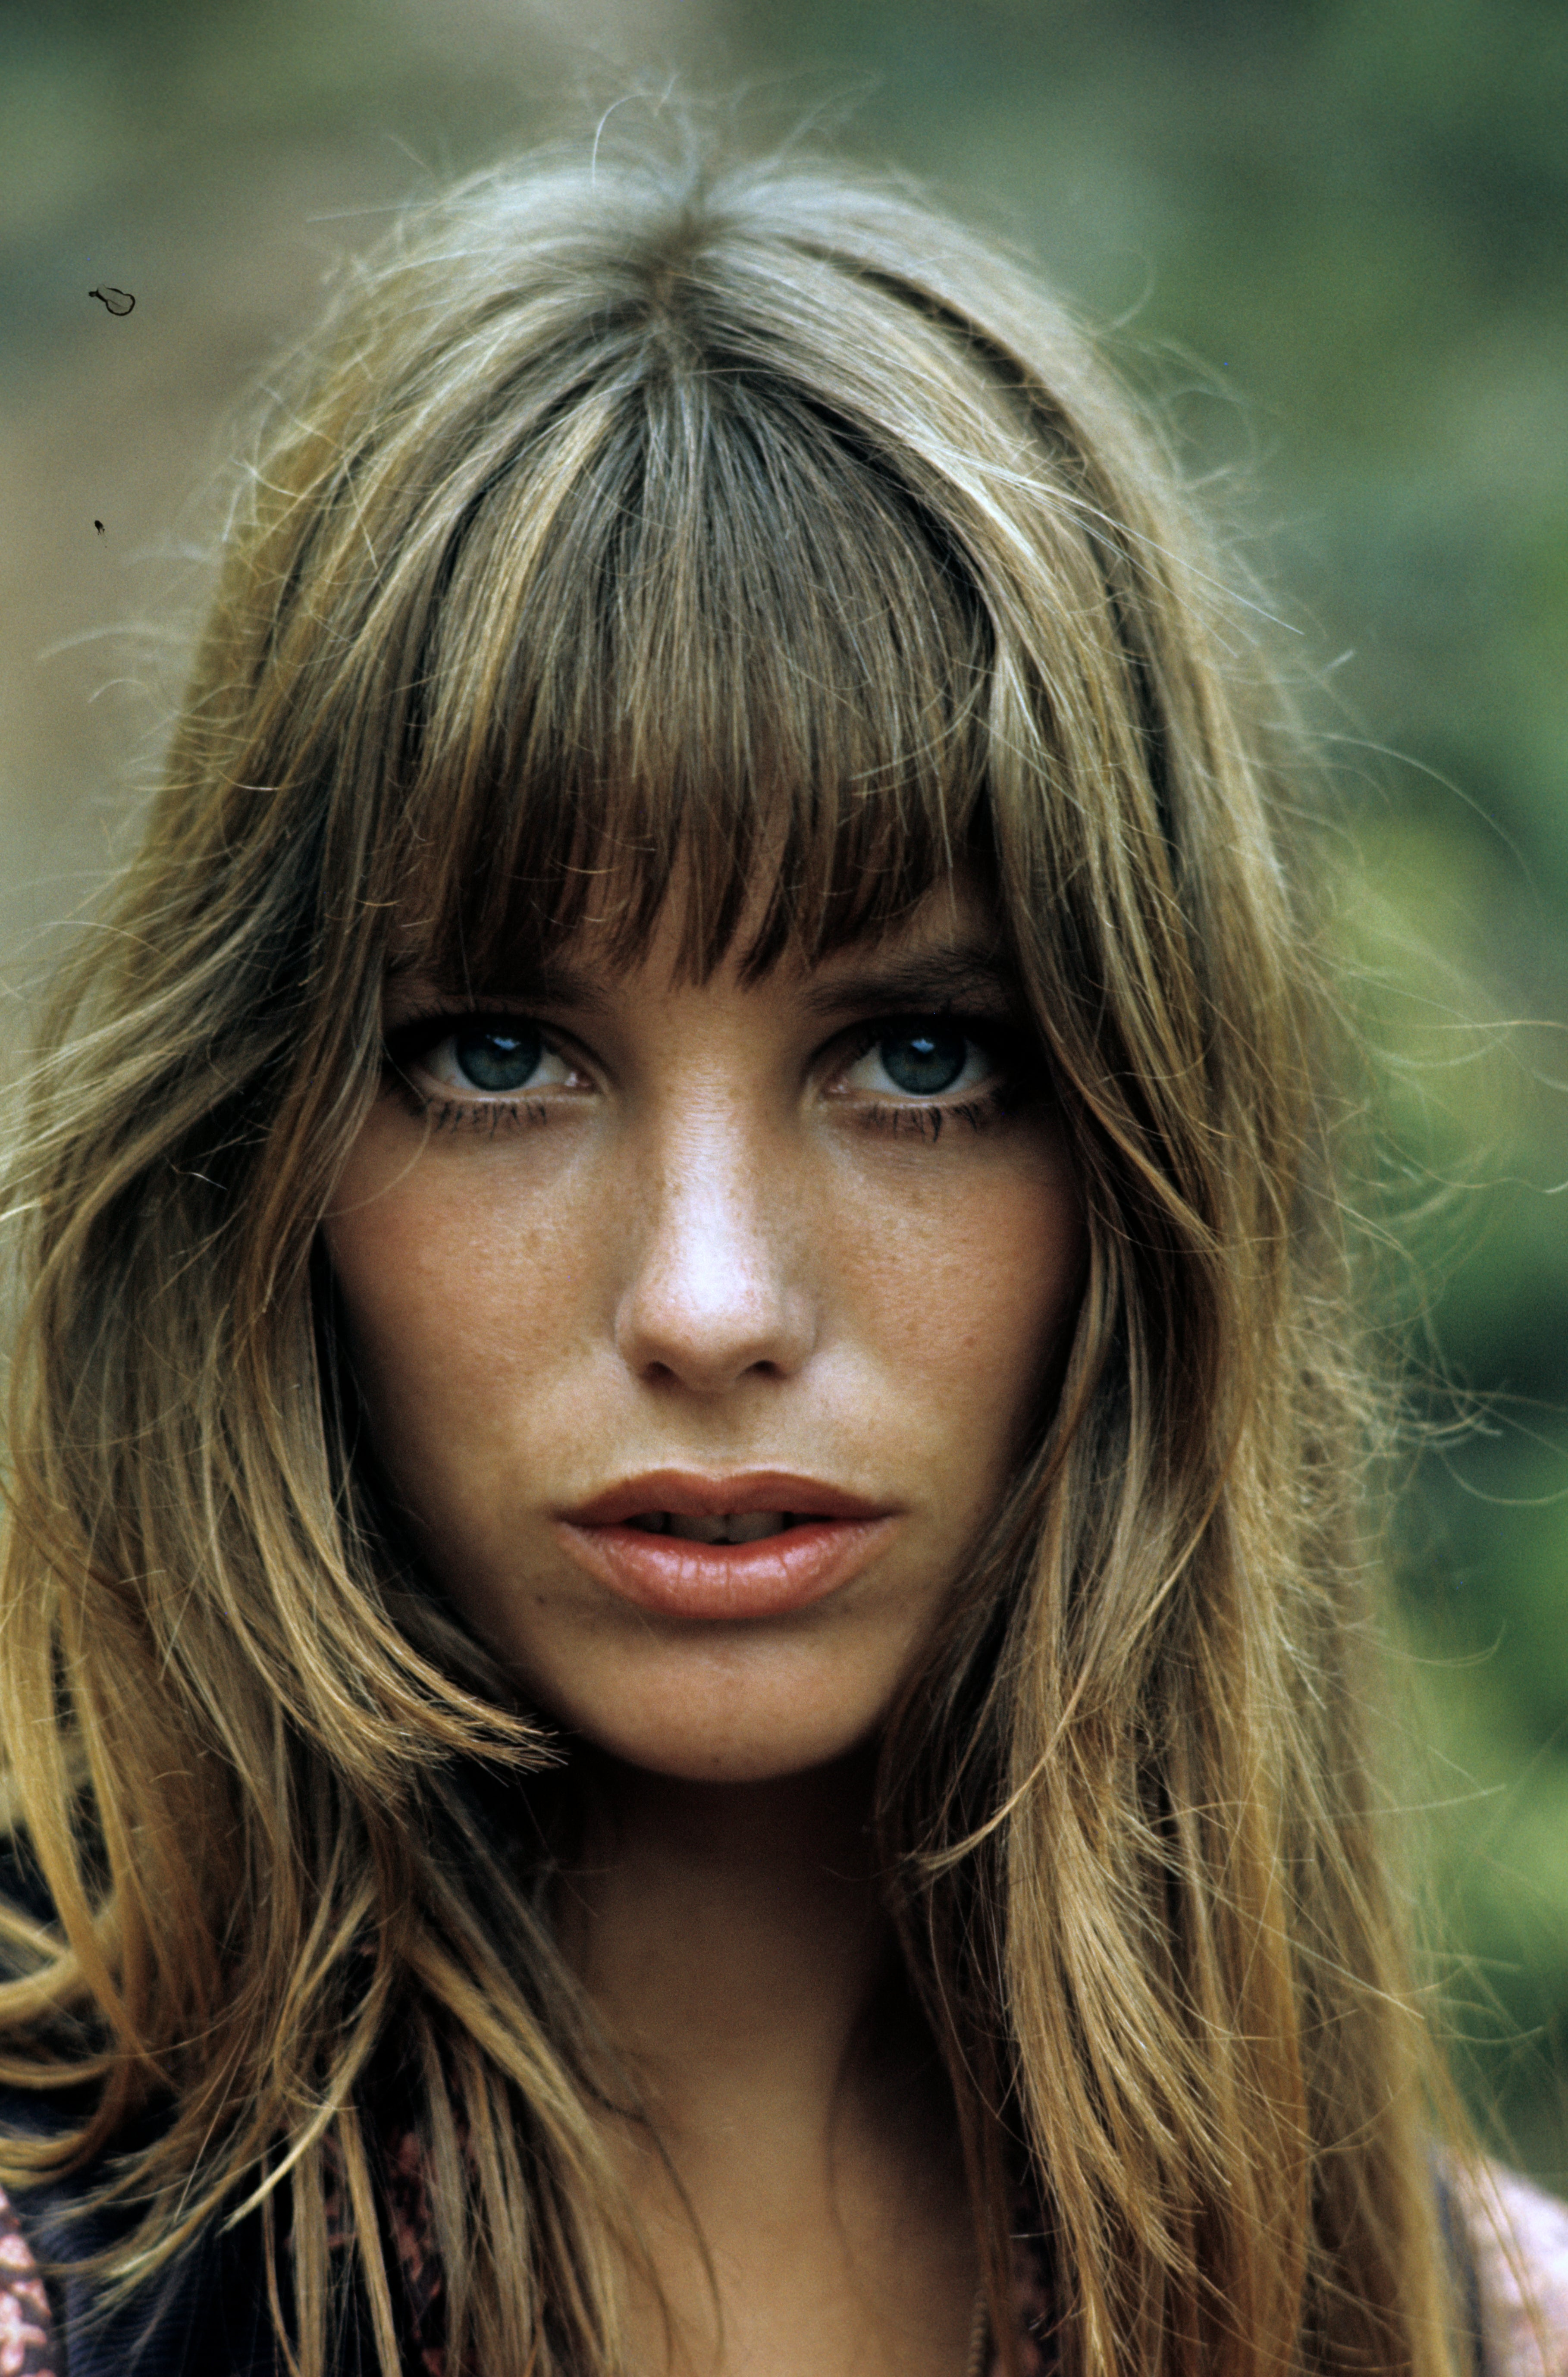 c79acffd43d1 The Muse of Muses Jane Birkin – FRAME